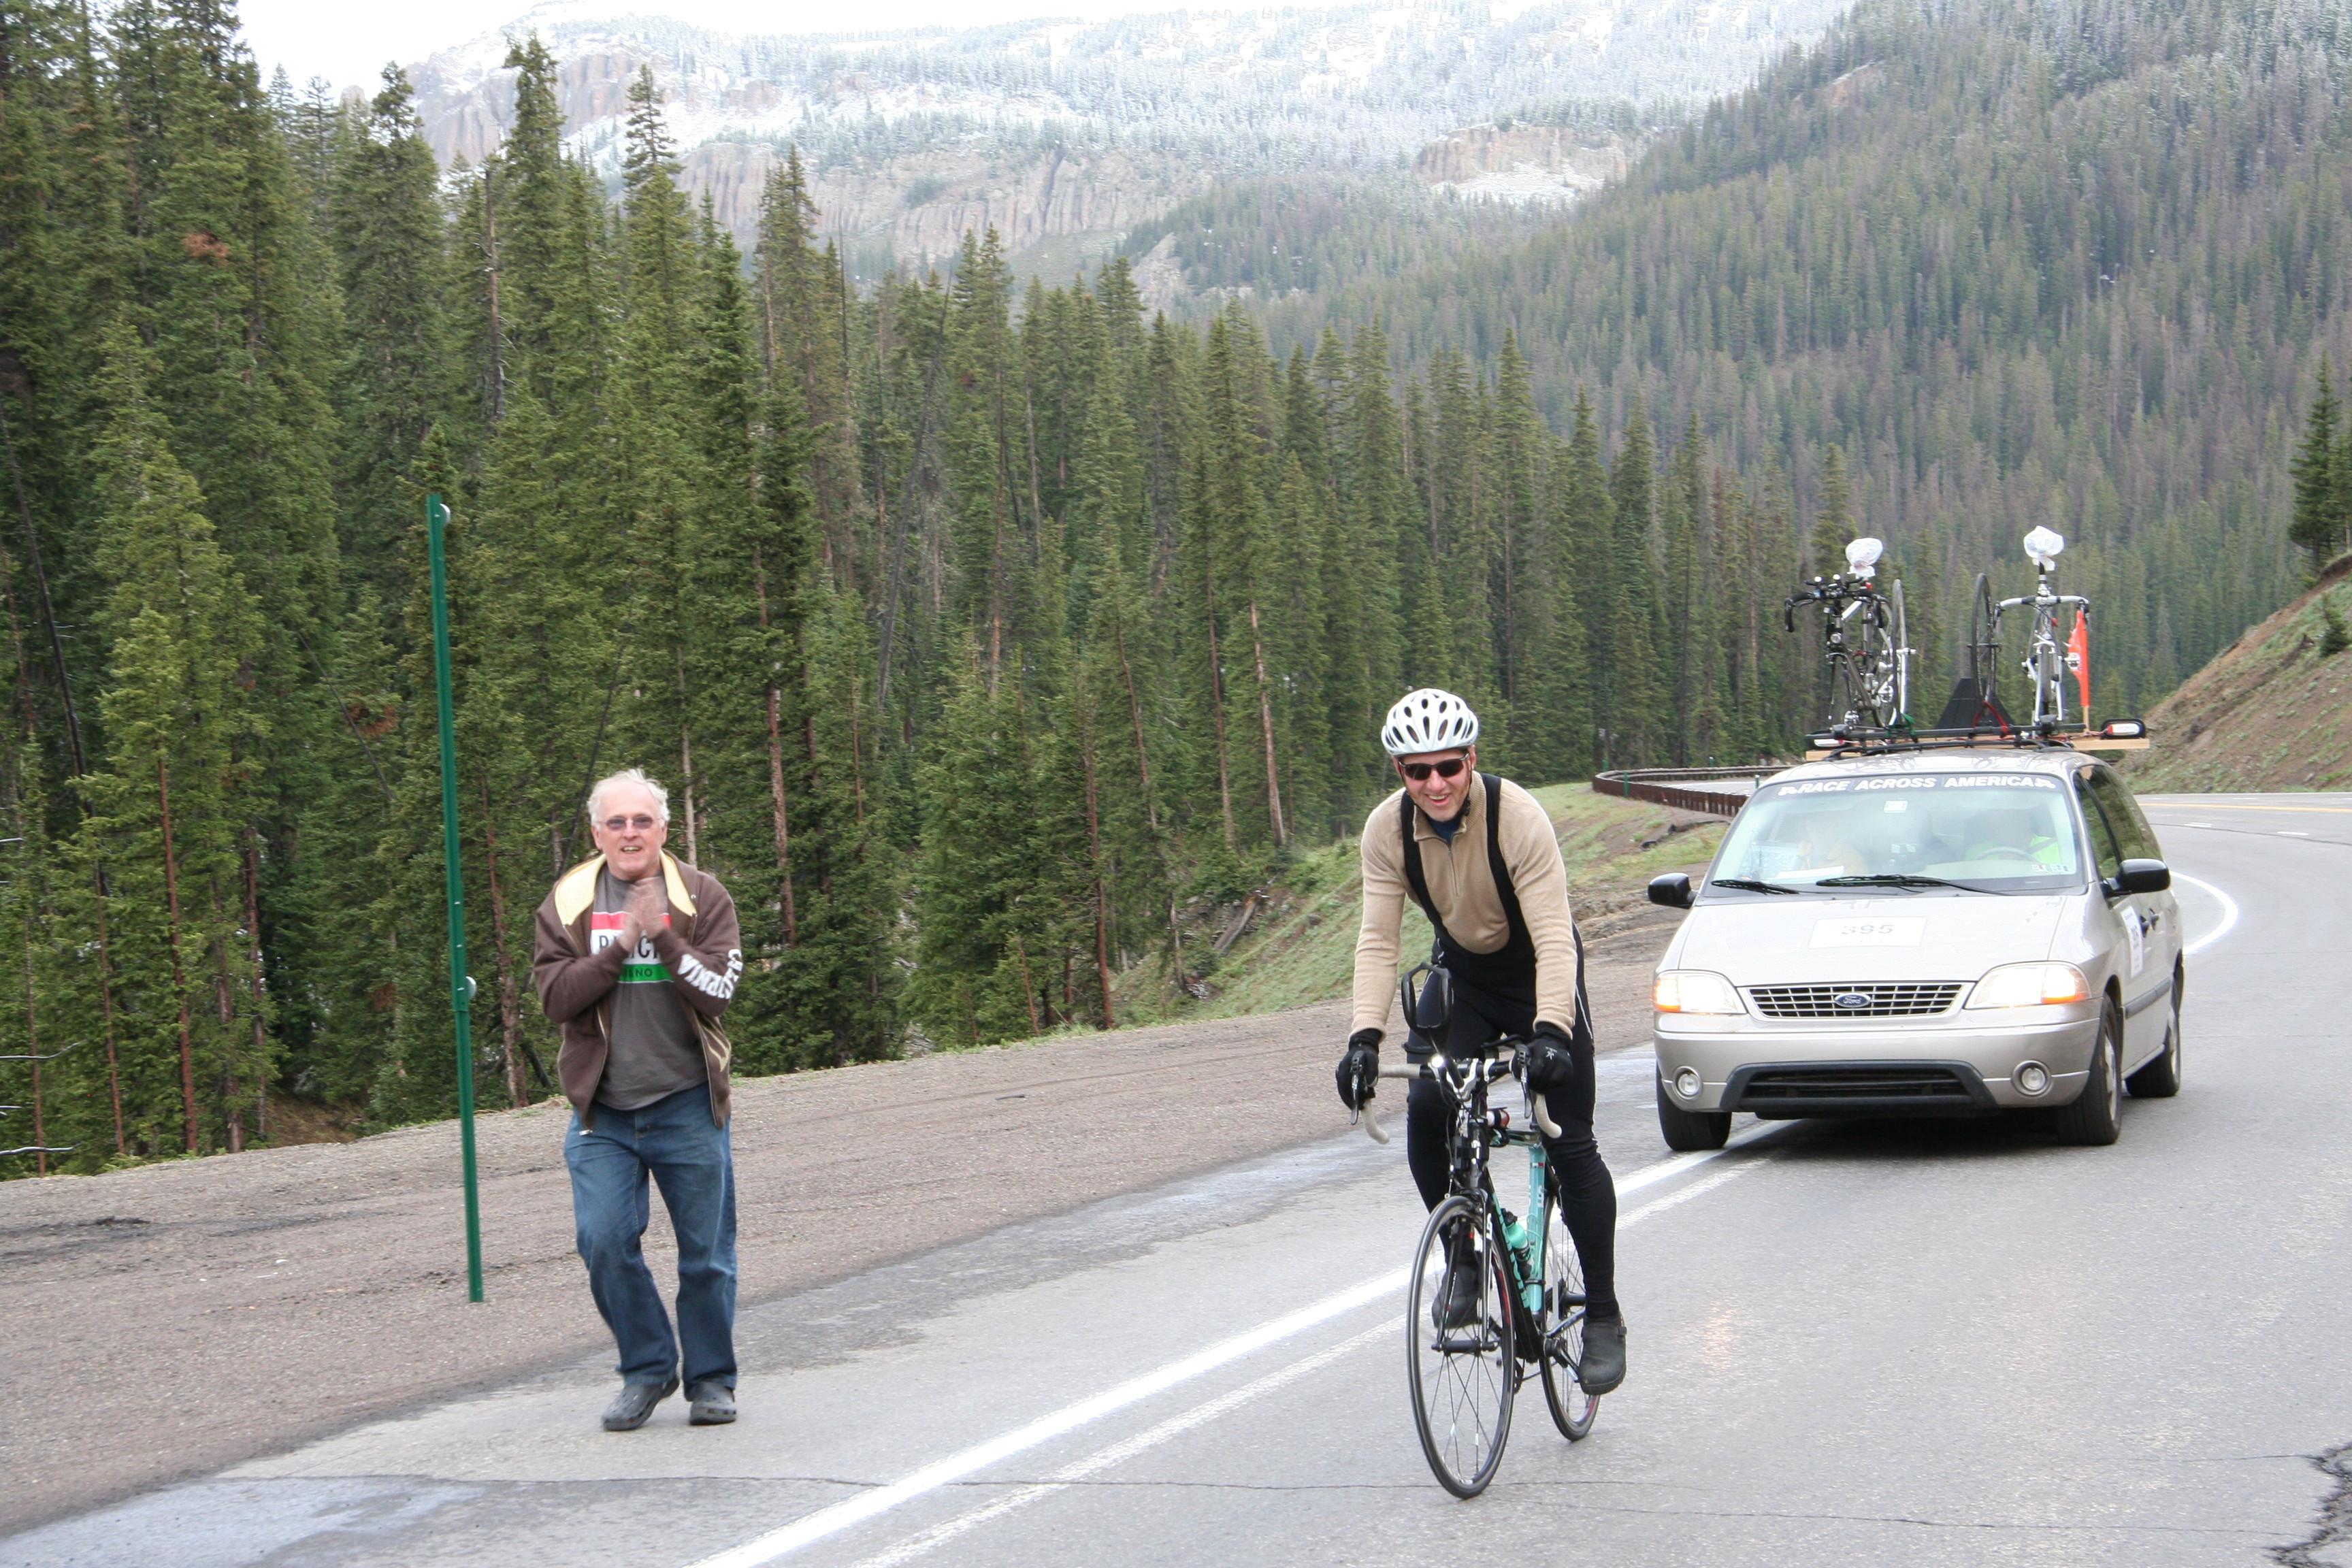 6-13-5-summit-approach-getting-encouragement-from-russ-i-swear-rick-smiled-the-whole-way